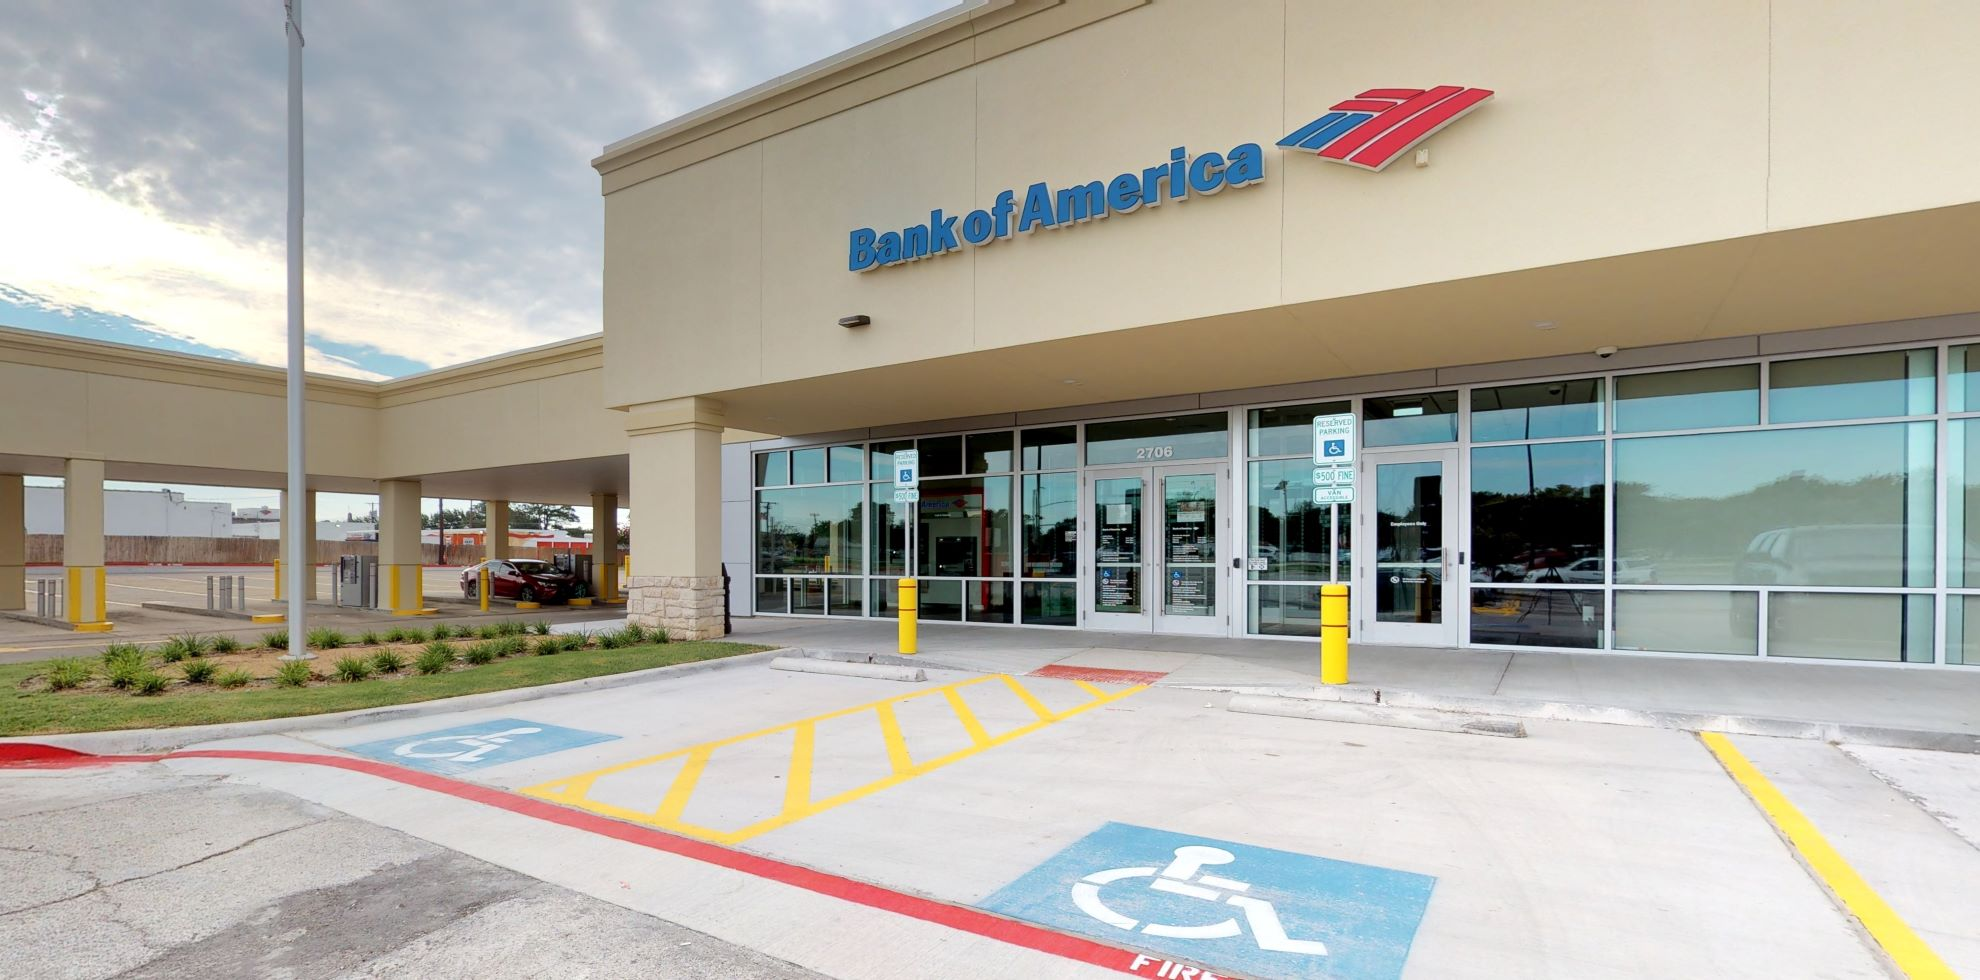 Bank of America financial center with drive-thru ATM | 2706 W Irving Blvd, Irving, TX 75061